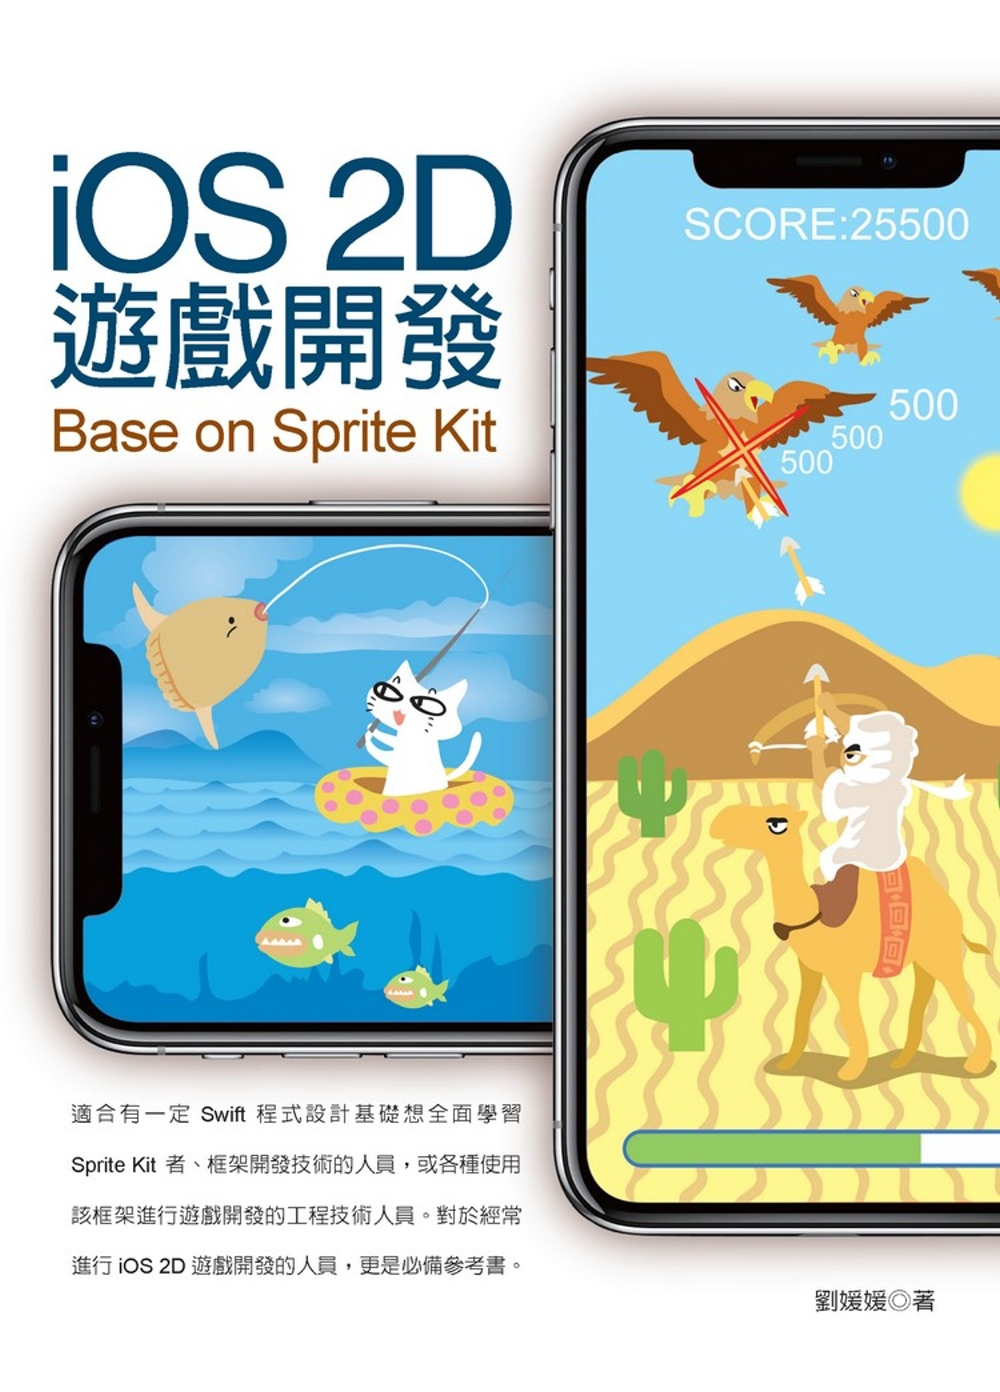 iOS 2D遊戲開發 – Base on Sprite Kit